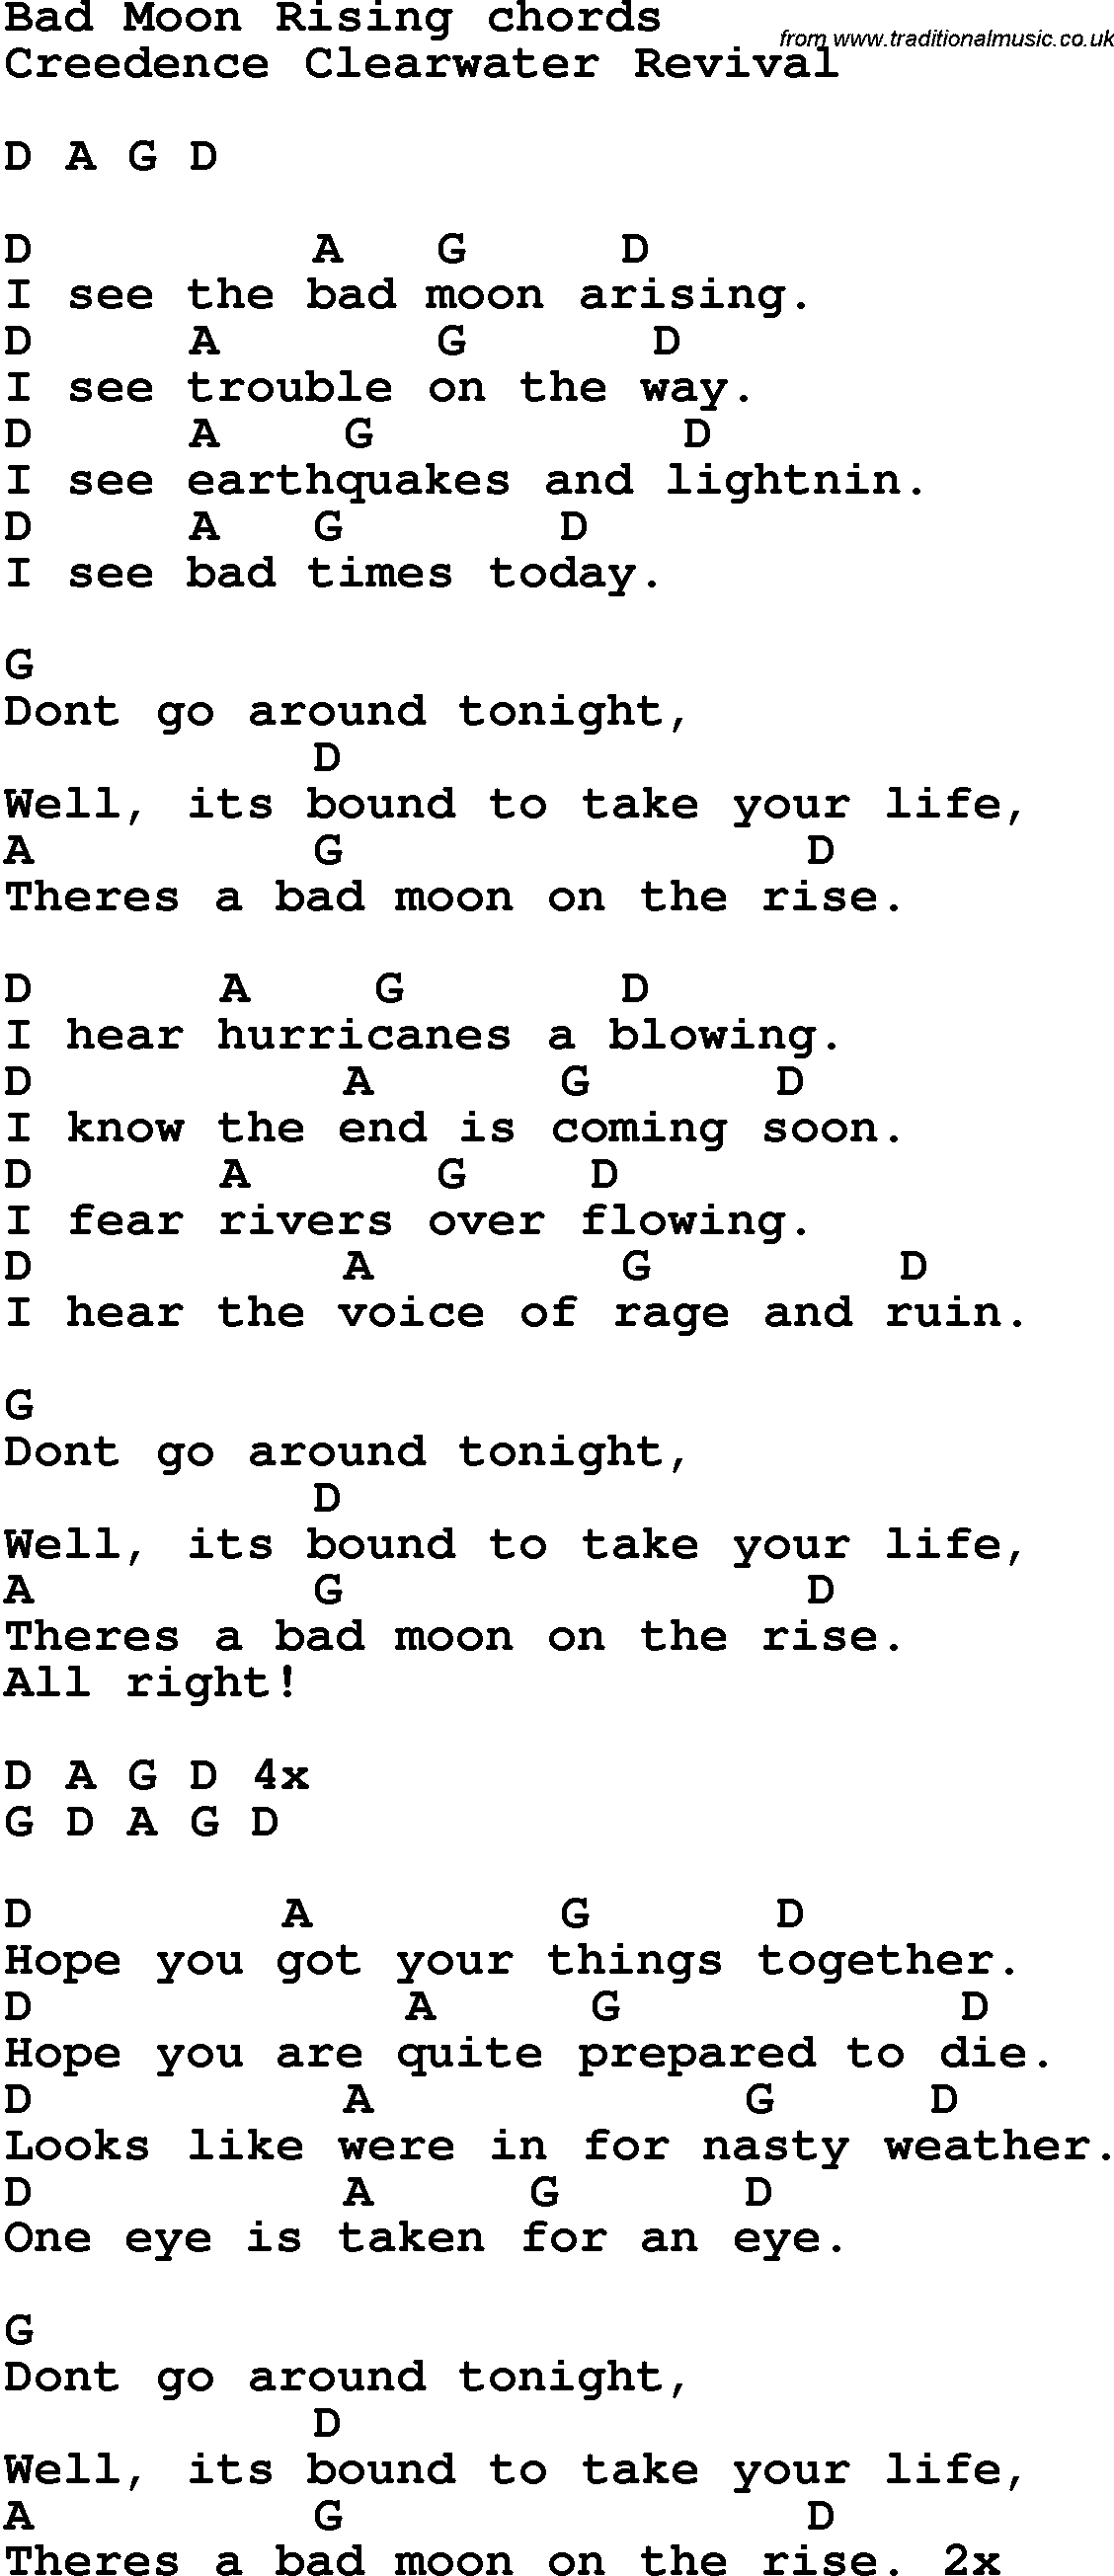 Song Lyrics With Guitar Chords For Bad Moon Rising | Sheet Music - Free Printable Song Lyrics With Guitar Chords